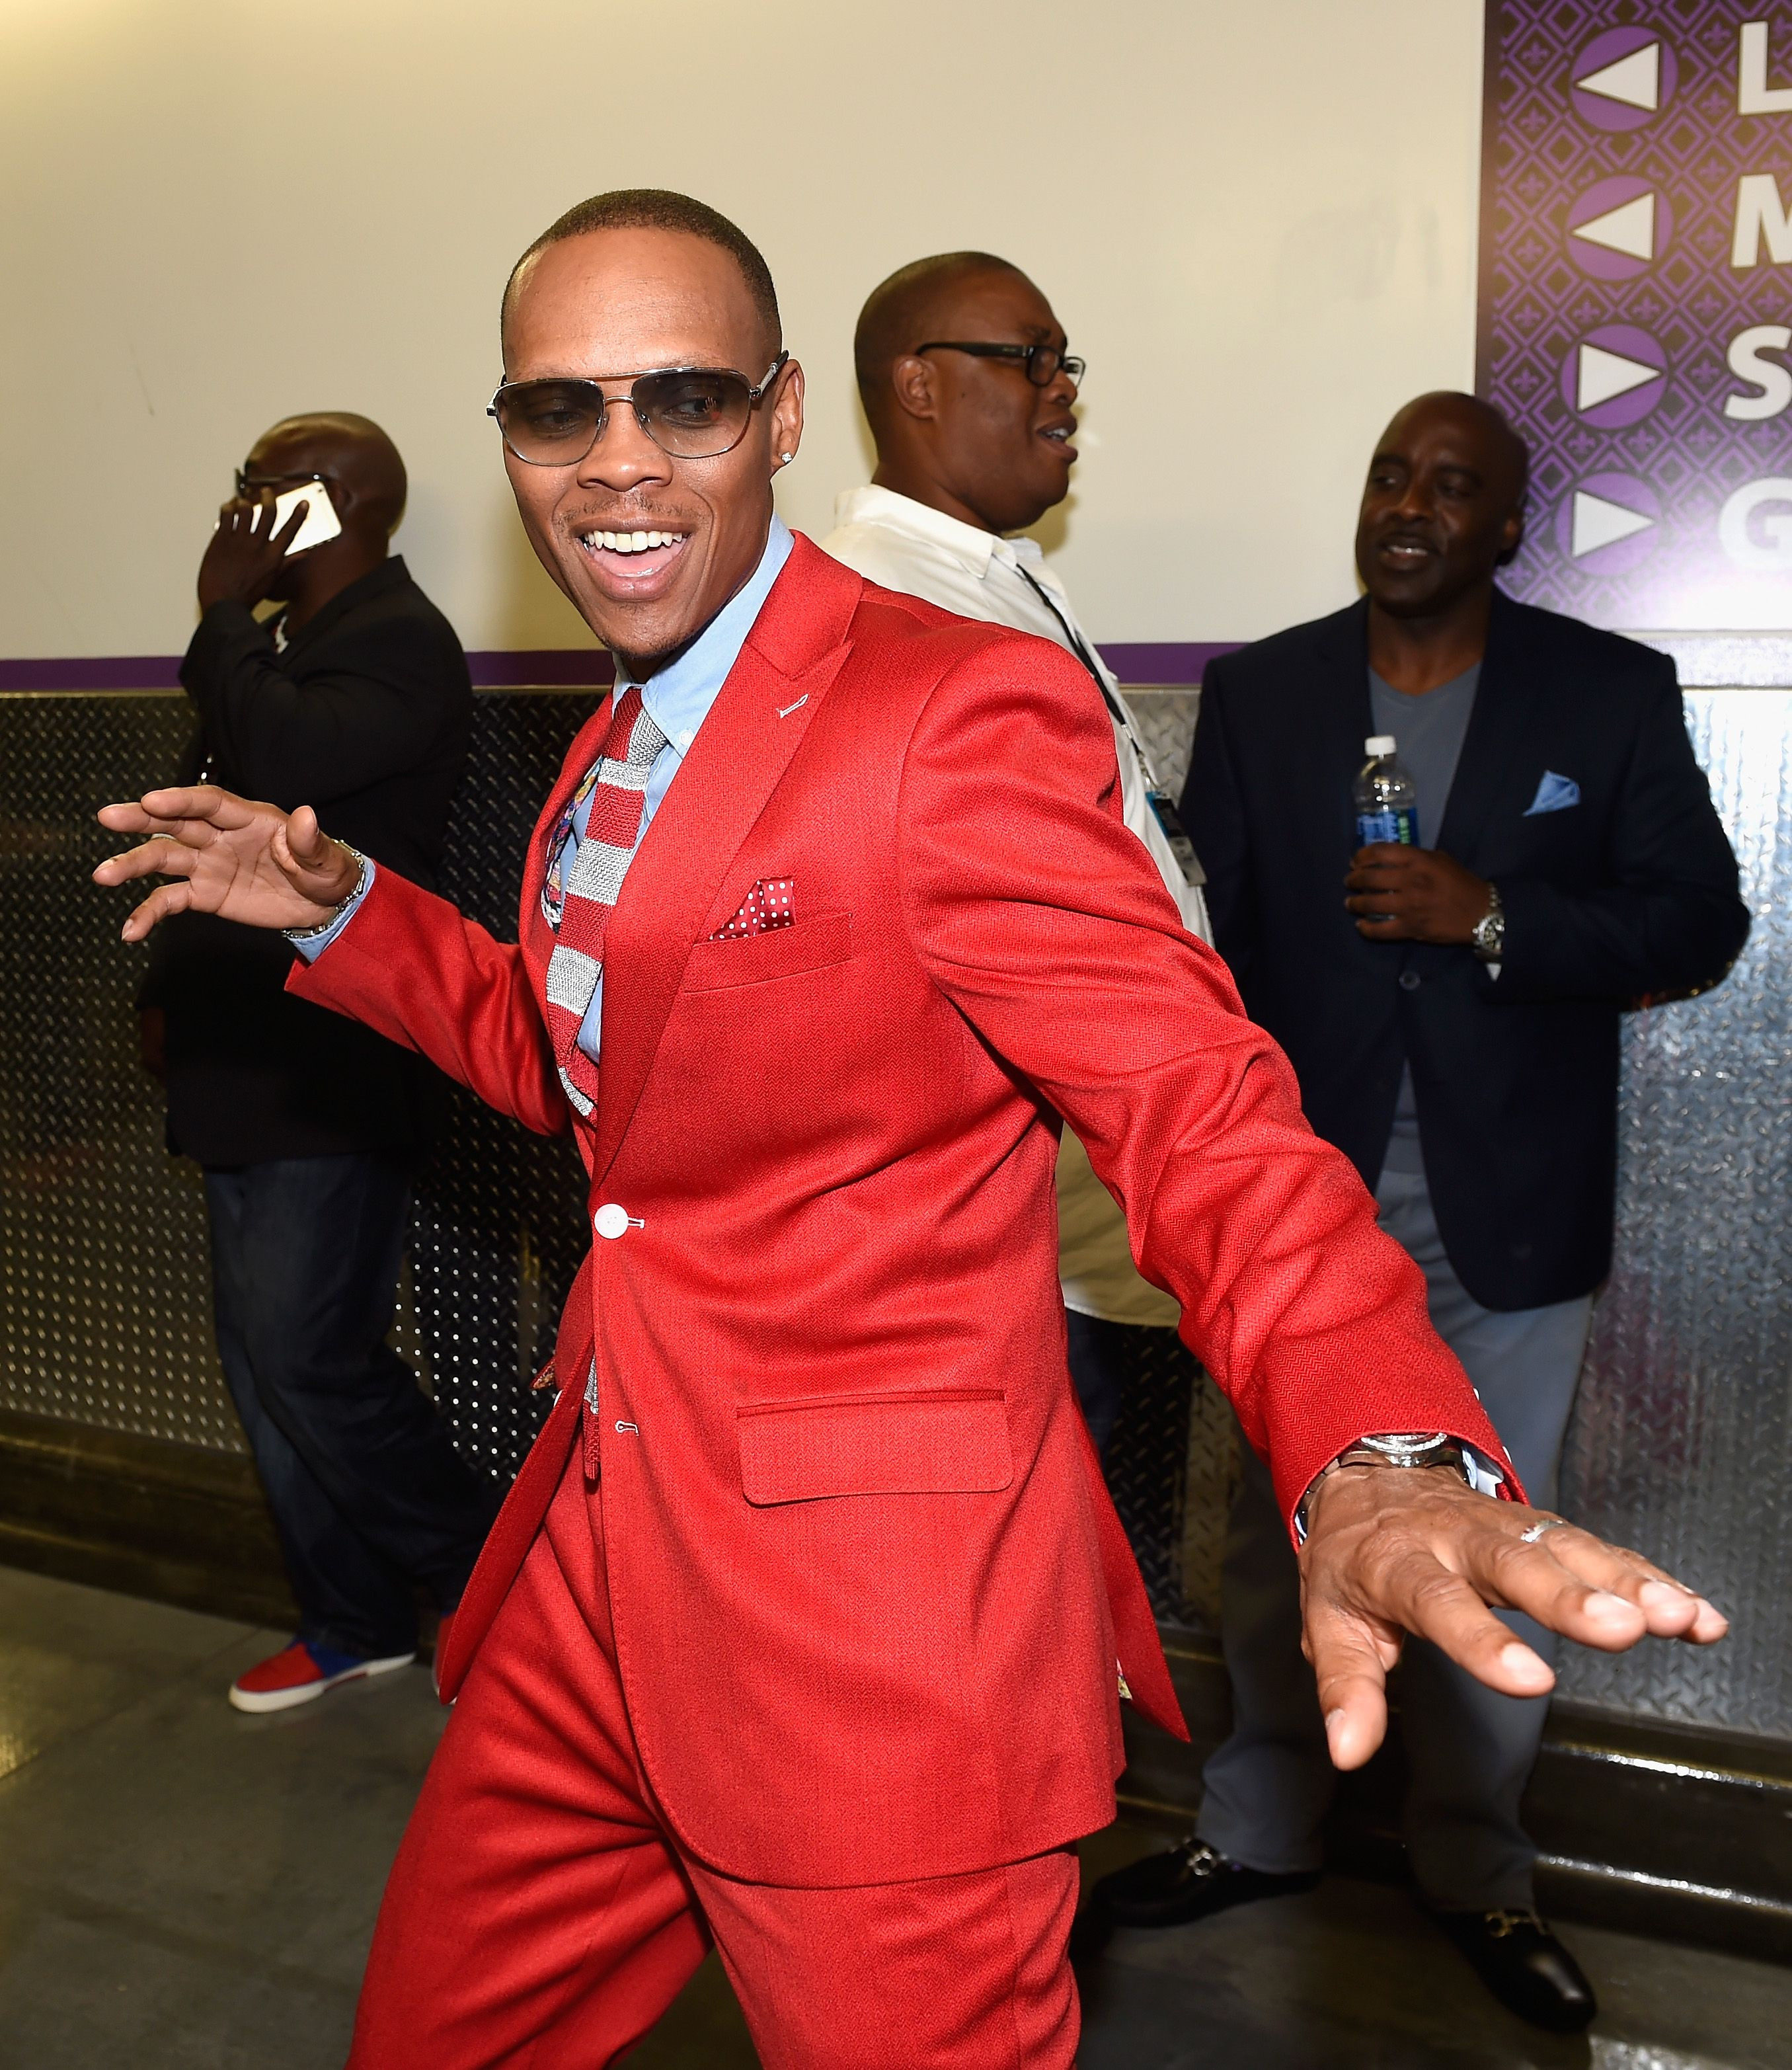 Ronnie DeVoe at the backstage during the 2016 Soul Train Music Awards on November 6, 2016 in Las Vegas, Nevada. | Source: Getty Images